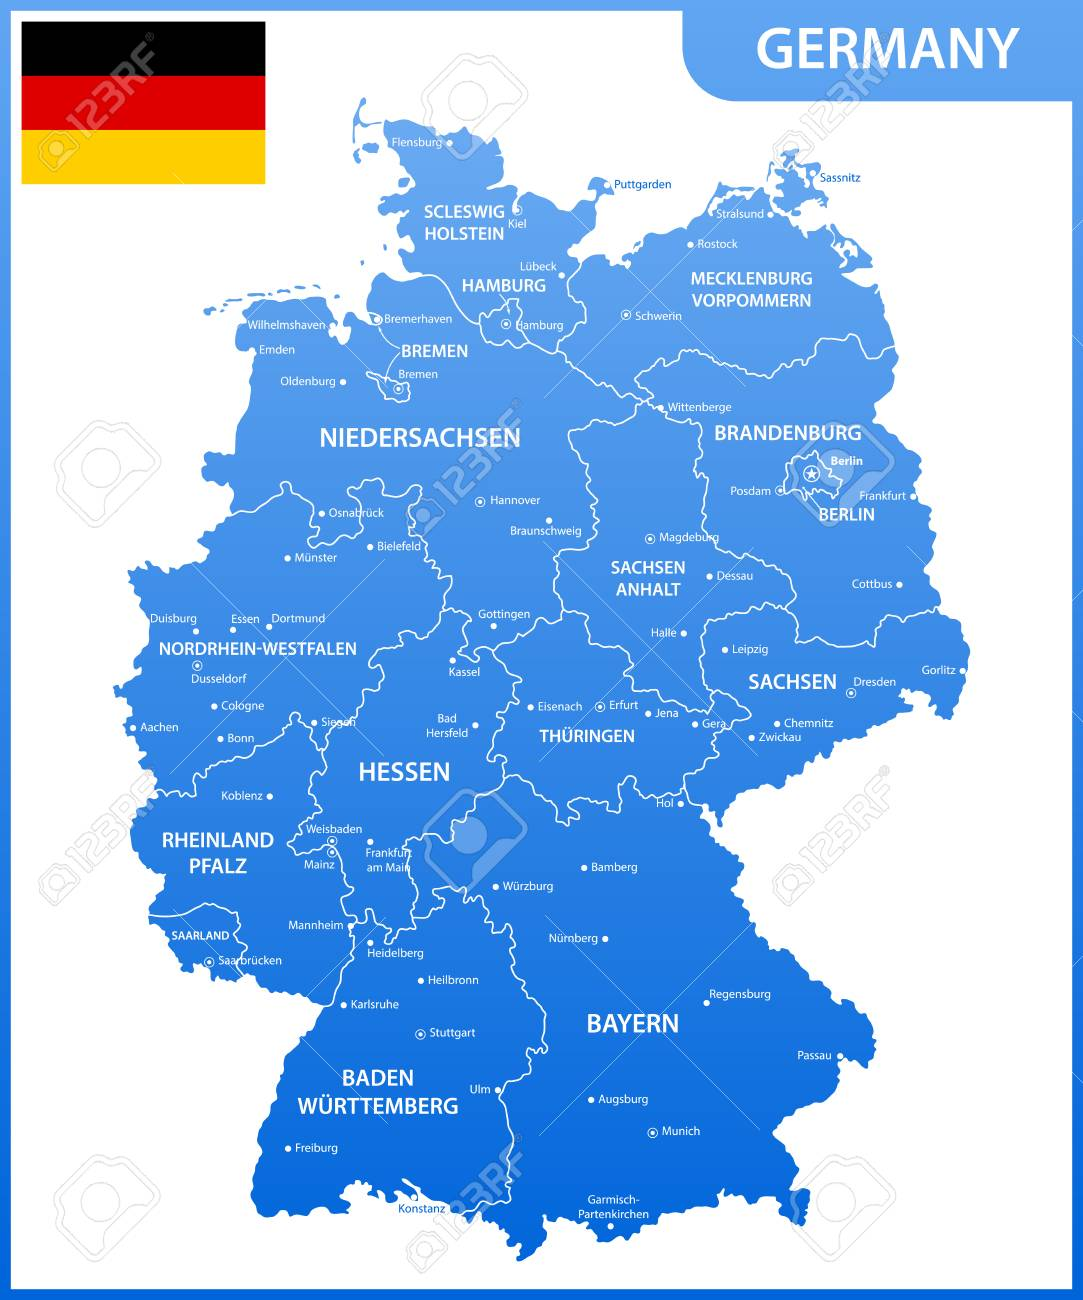 Map Of Germany Showing Cities.The Detailed Map Of The Germany With Regions Or States And Cities